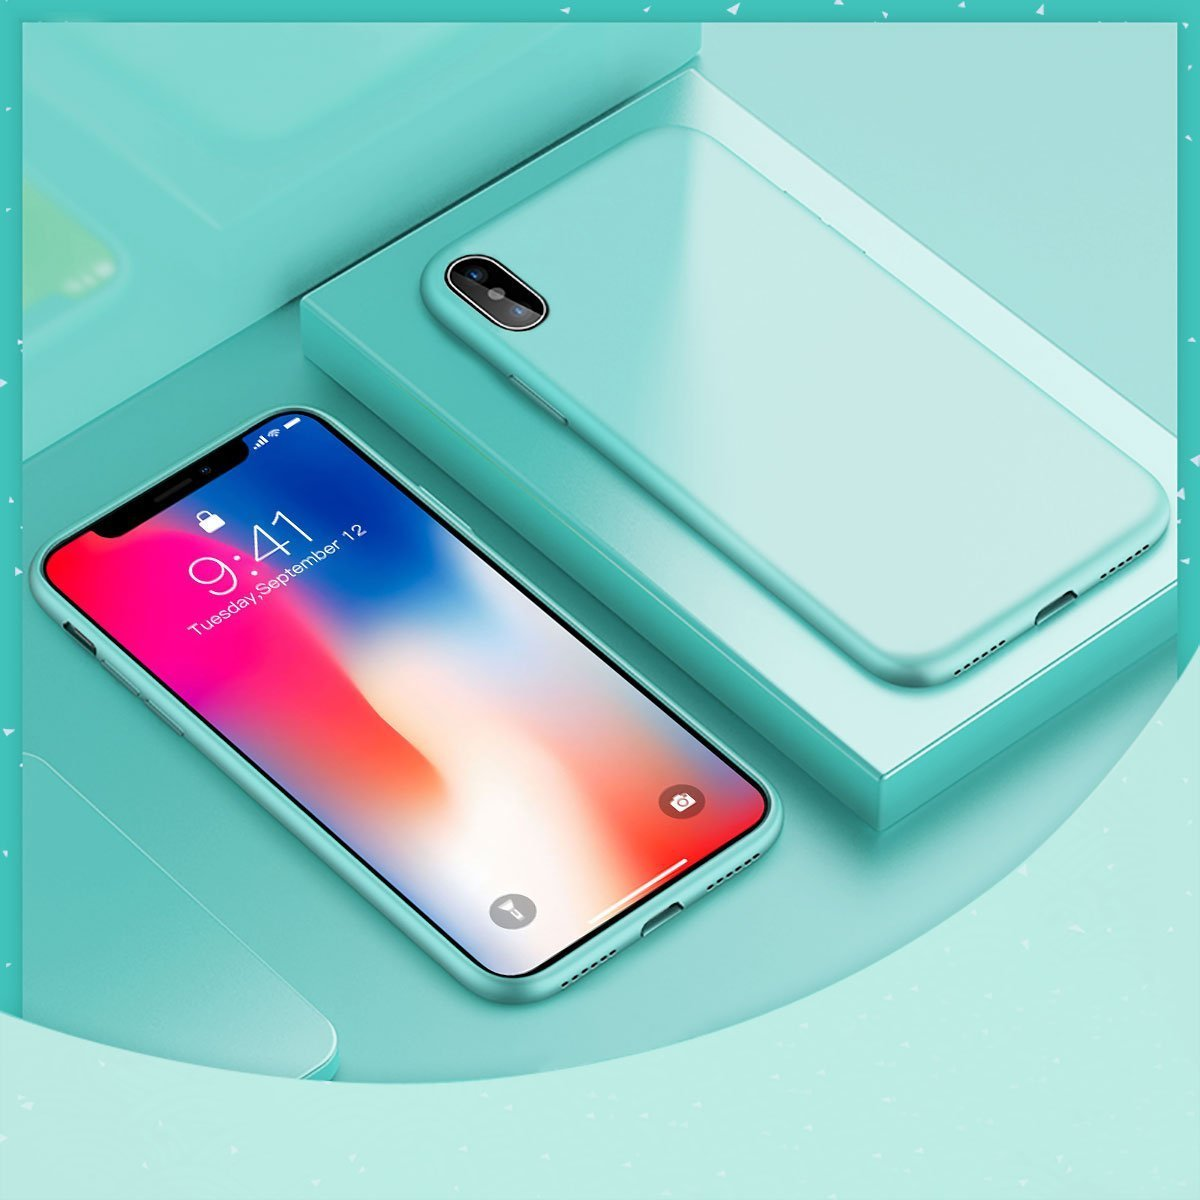 Ztotop iPhone X Case, Ultra Slim Liquid Silicone Gel Rubber Anti-Scratch Shockproof 5.8 Inch Minimalist Design Cover for Apple iPhone X/10 with Honeycomb Grid Pattern, Green